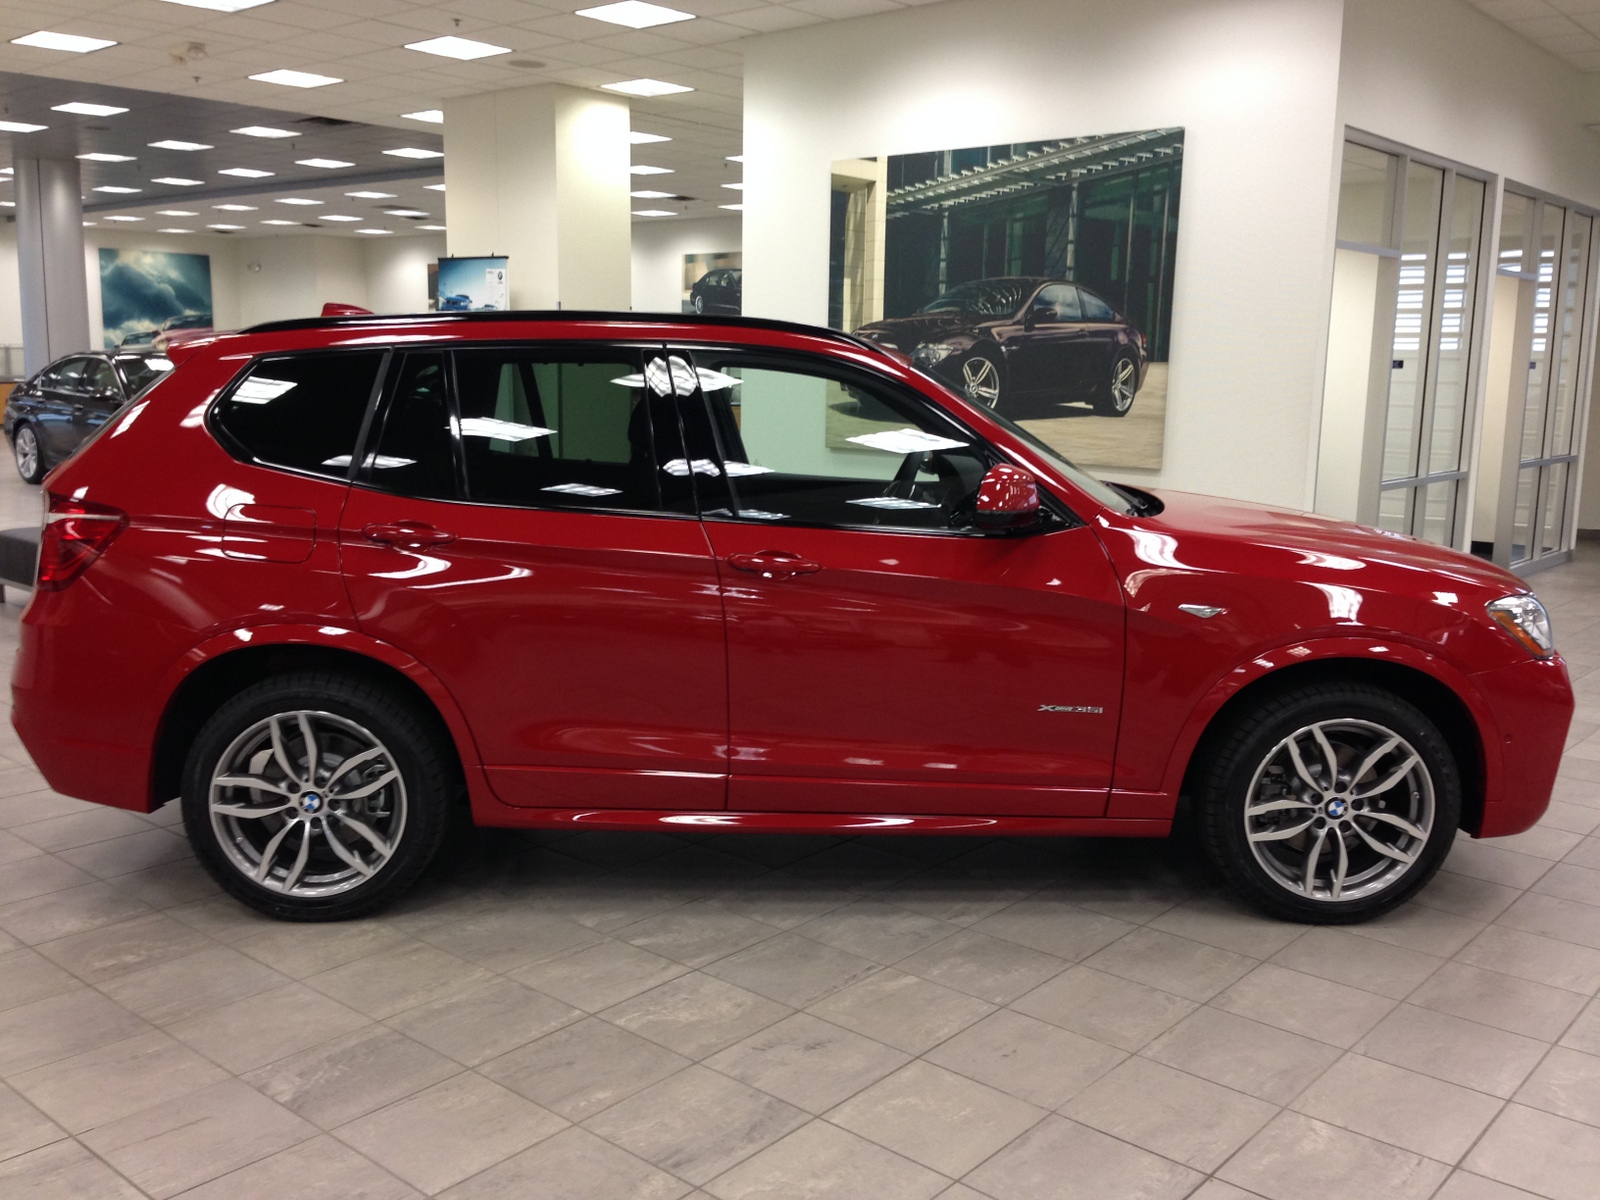 LOTS OF PICS Picked Up Yesterday 2015 X3 XDrive 35i M Sport Melbourne Red